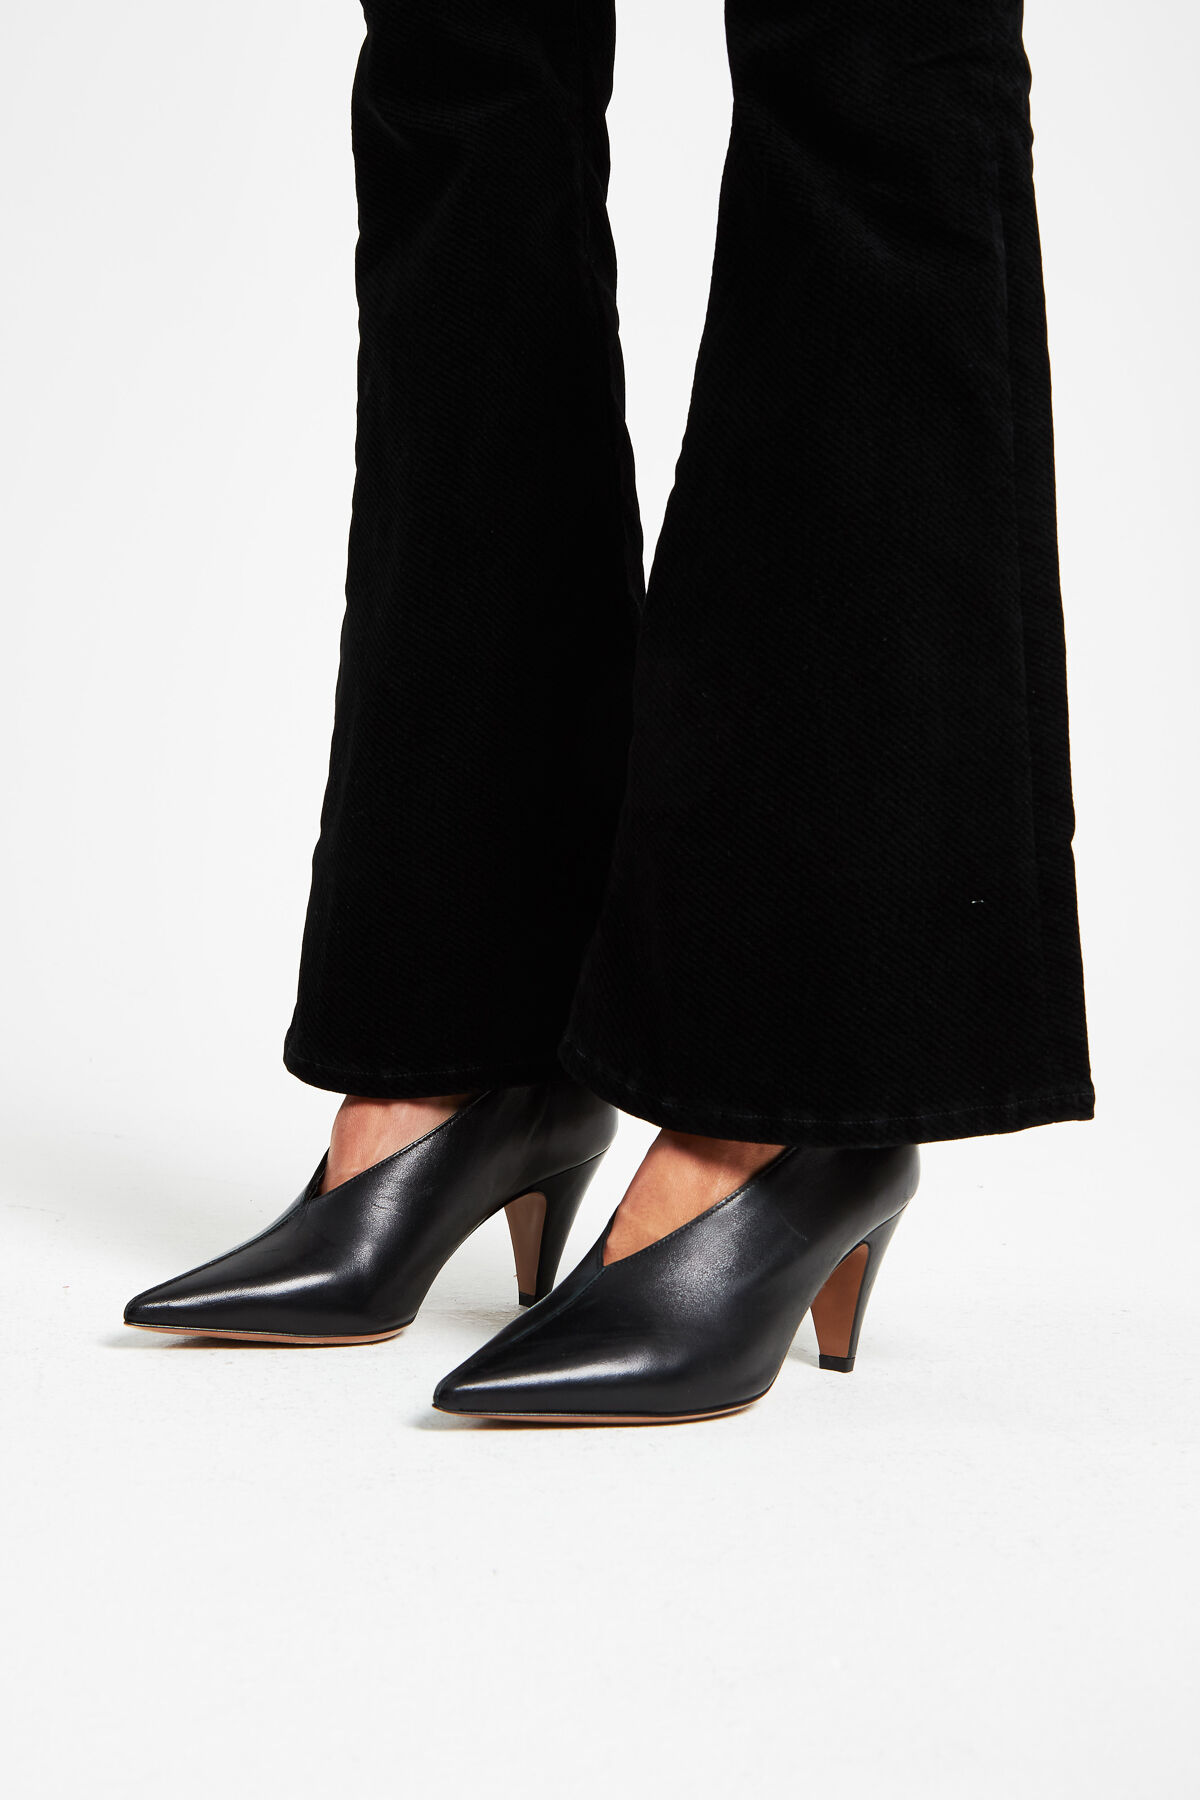 FARRAH Black Twill Velour - Flare Fit